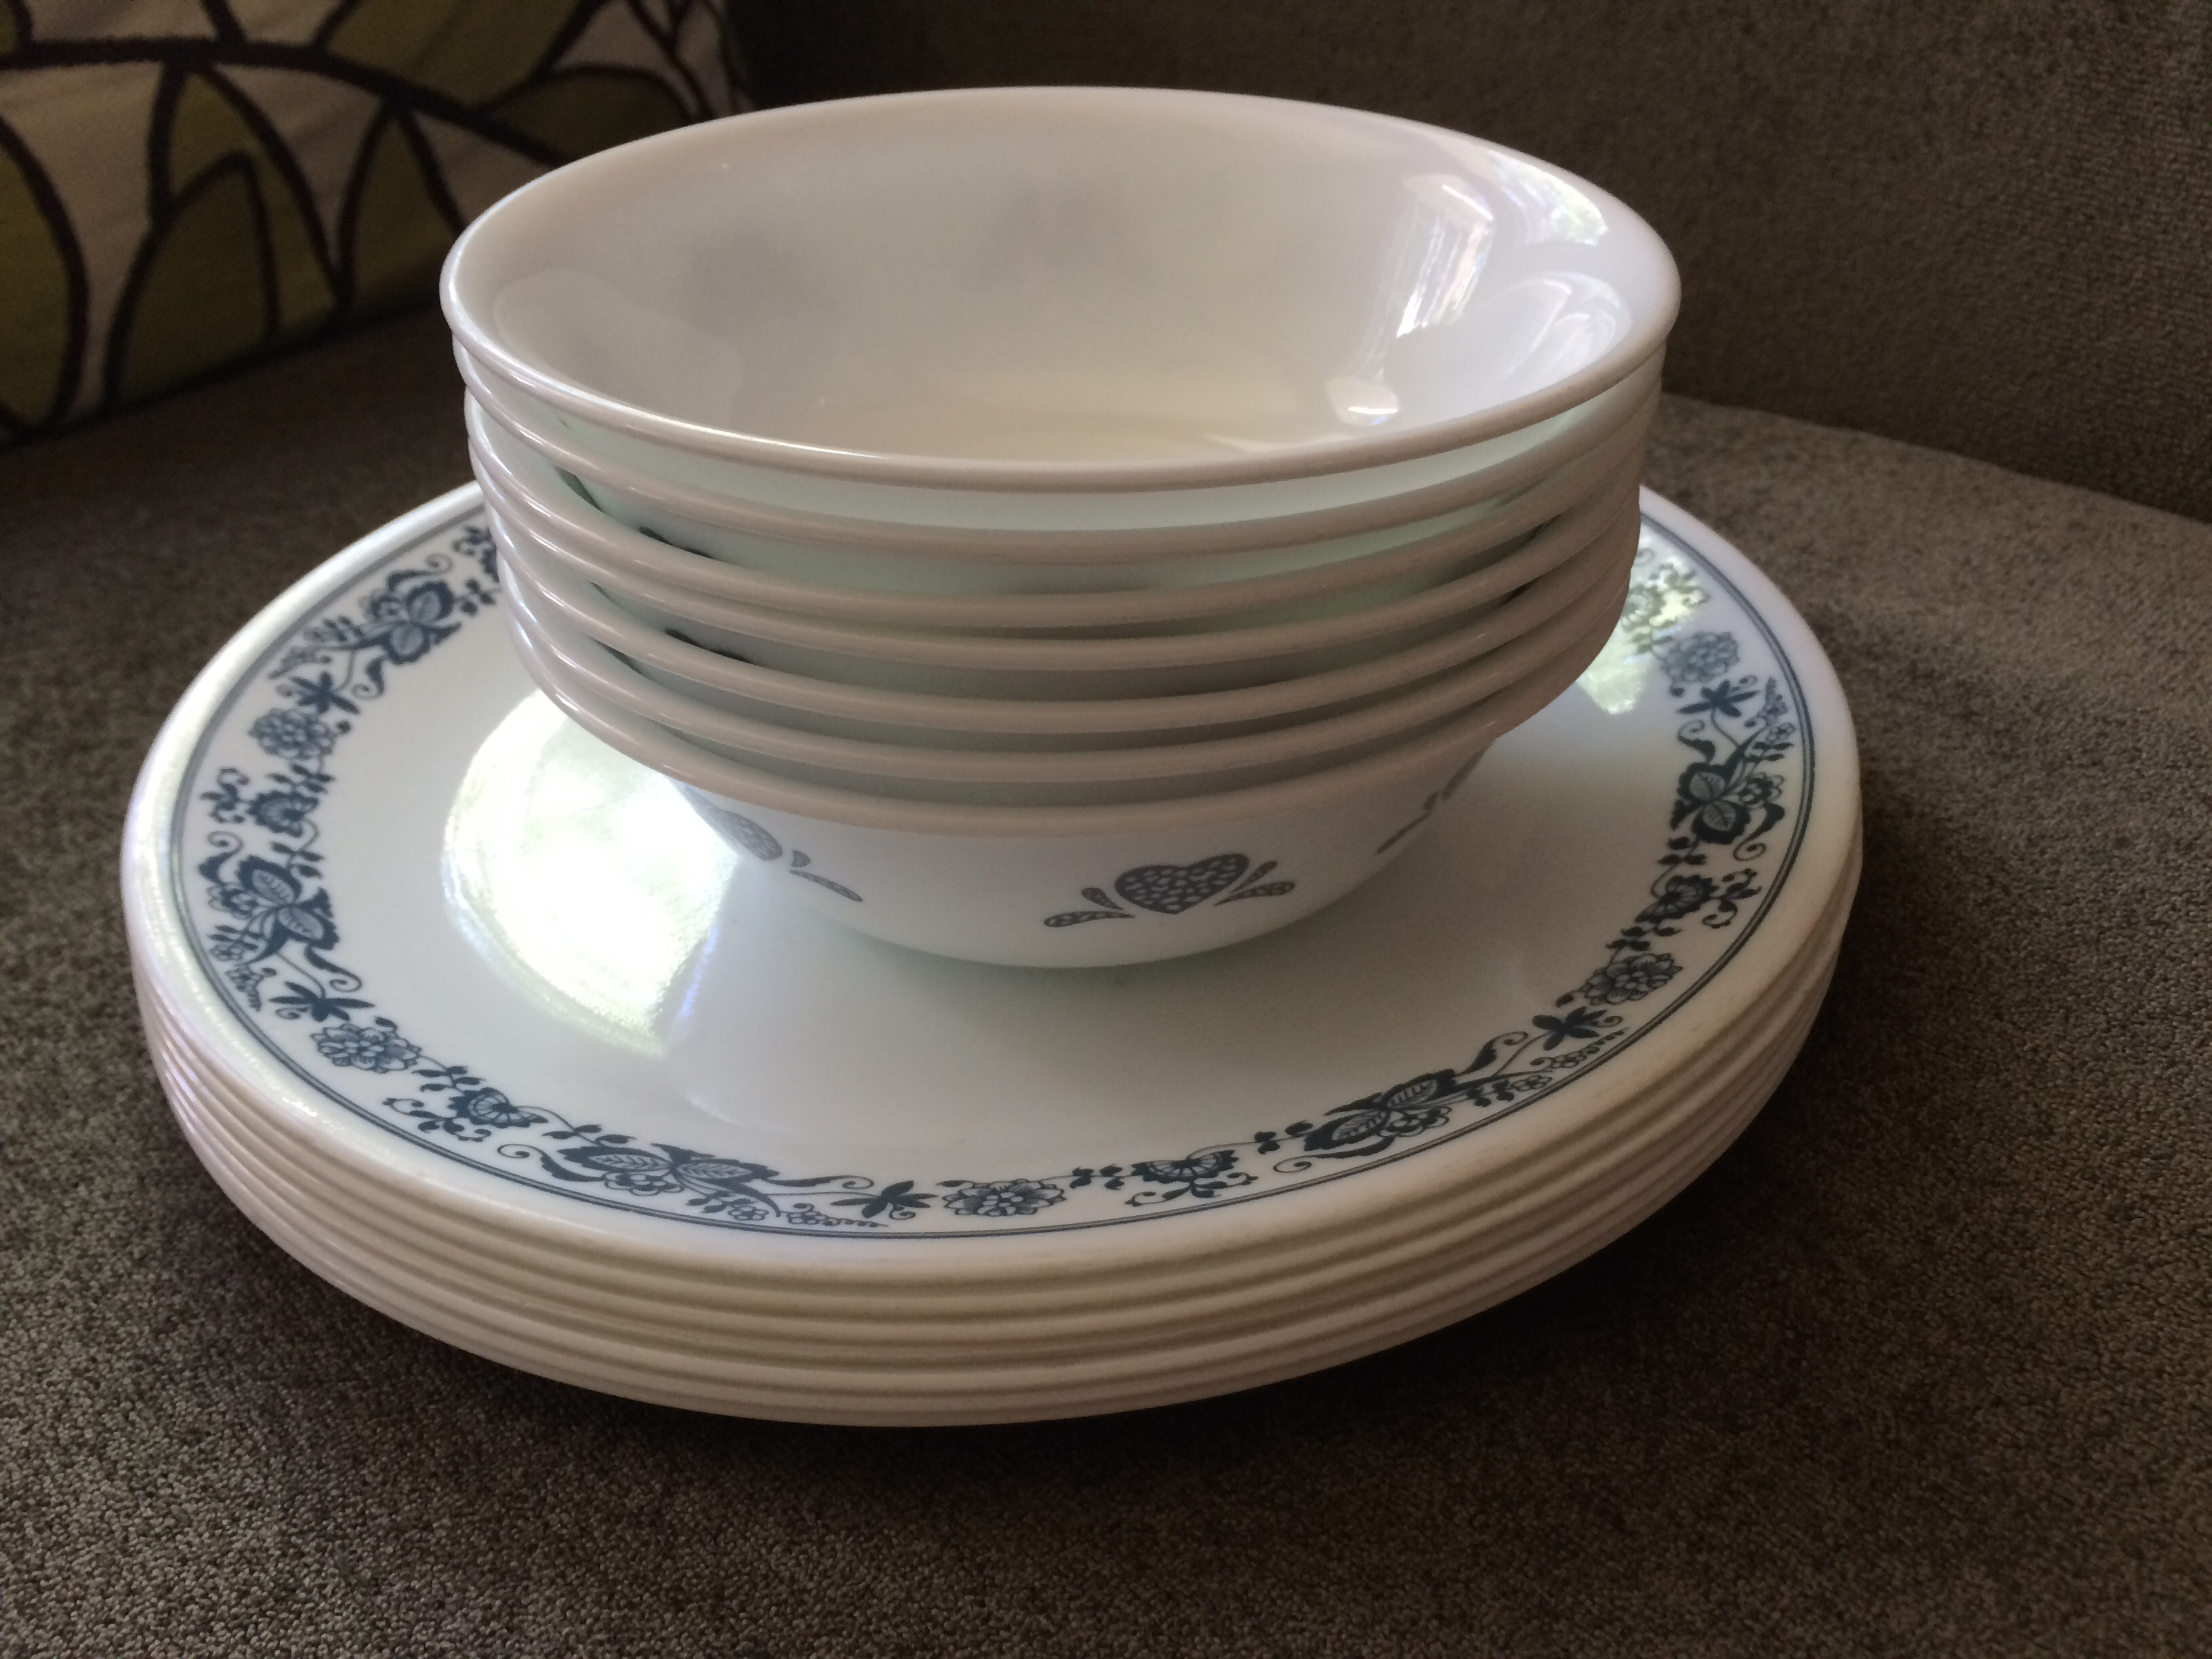 cottages pu more innsbrook pattern dishes mugs or near bread chips plates cottage find crazing dessert no euc dinner country corelle i